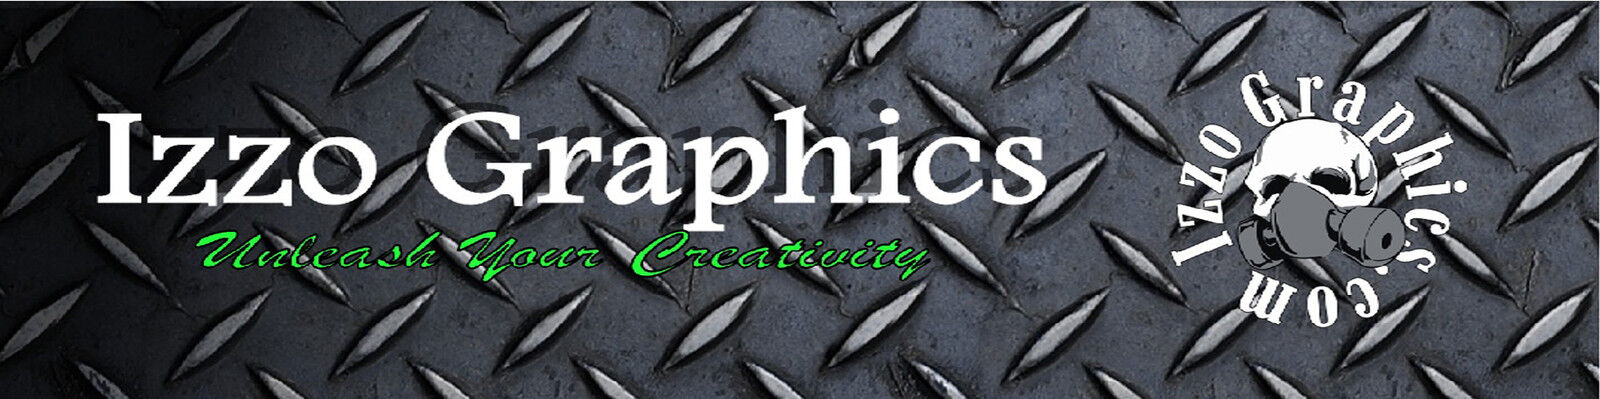 Izzo Graphics